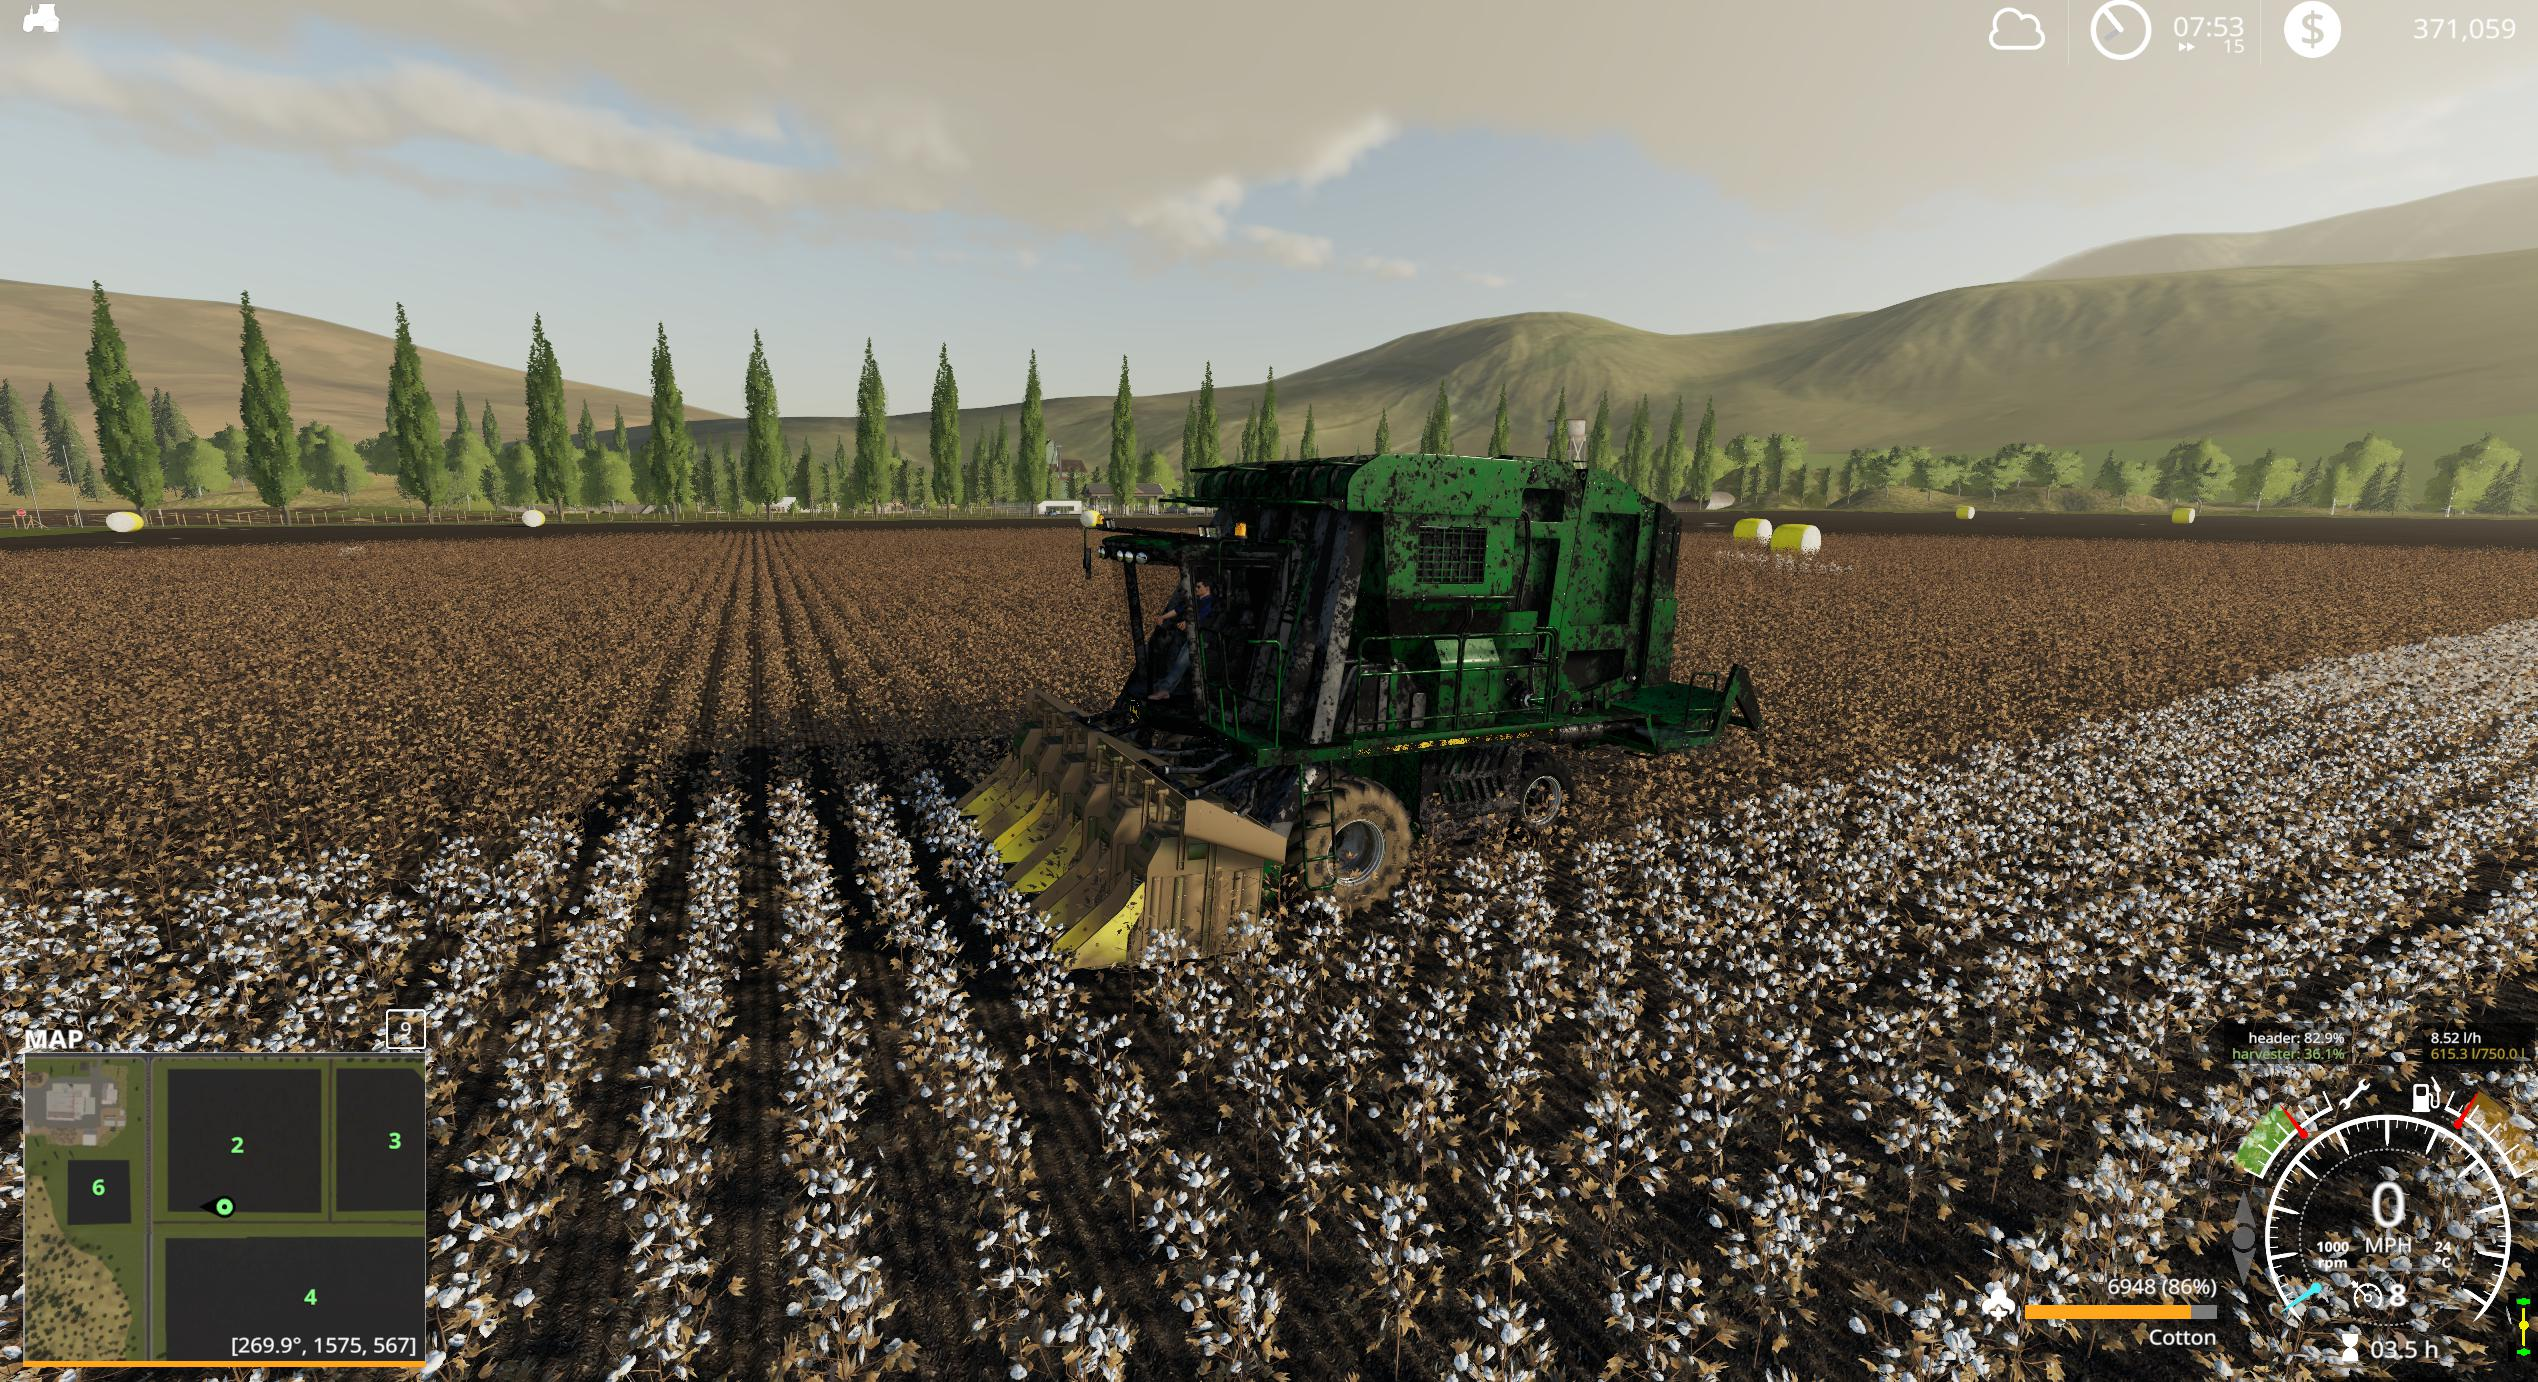 John Deere 7760 Cotton Baler v1 0 FS19 - Farming Simulator